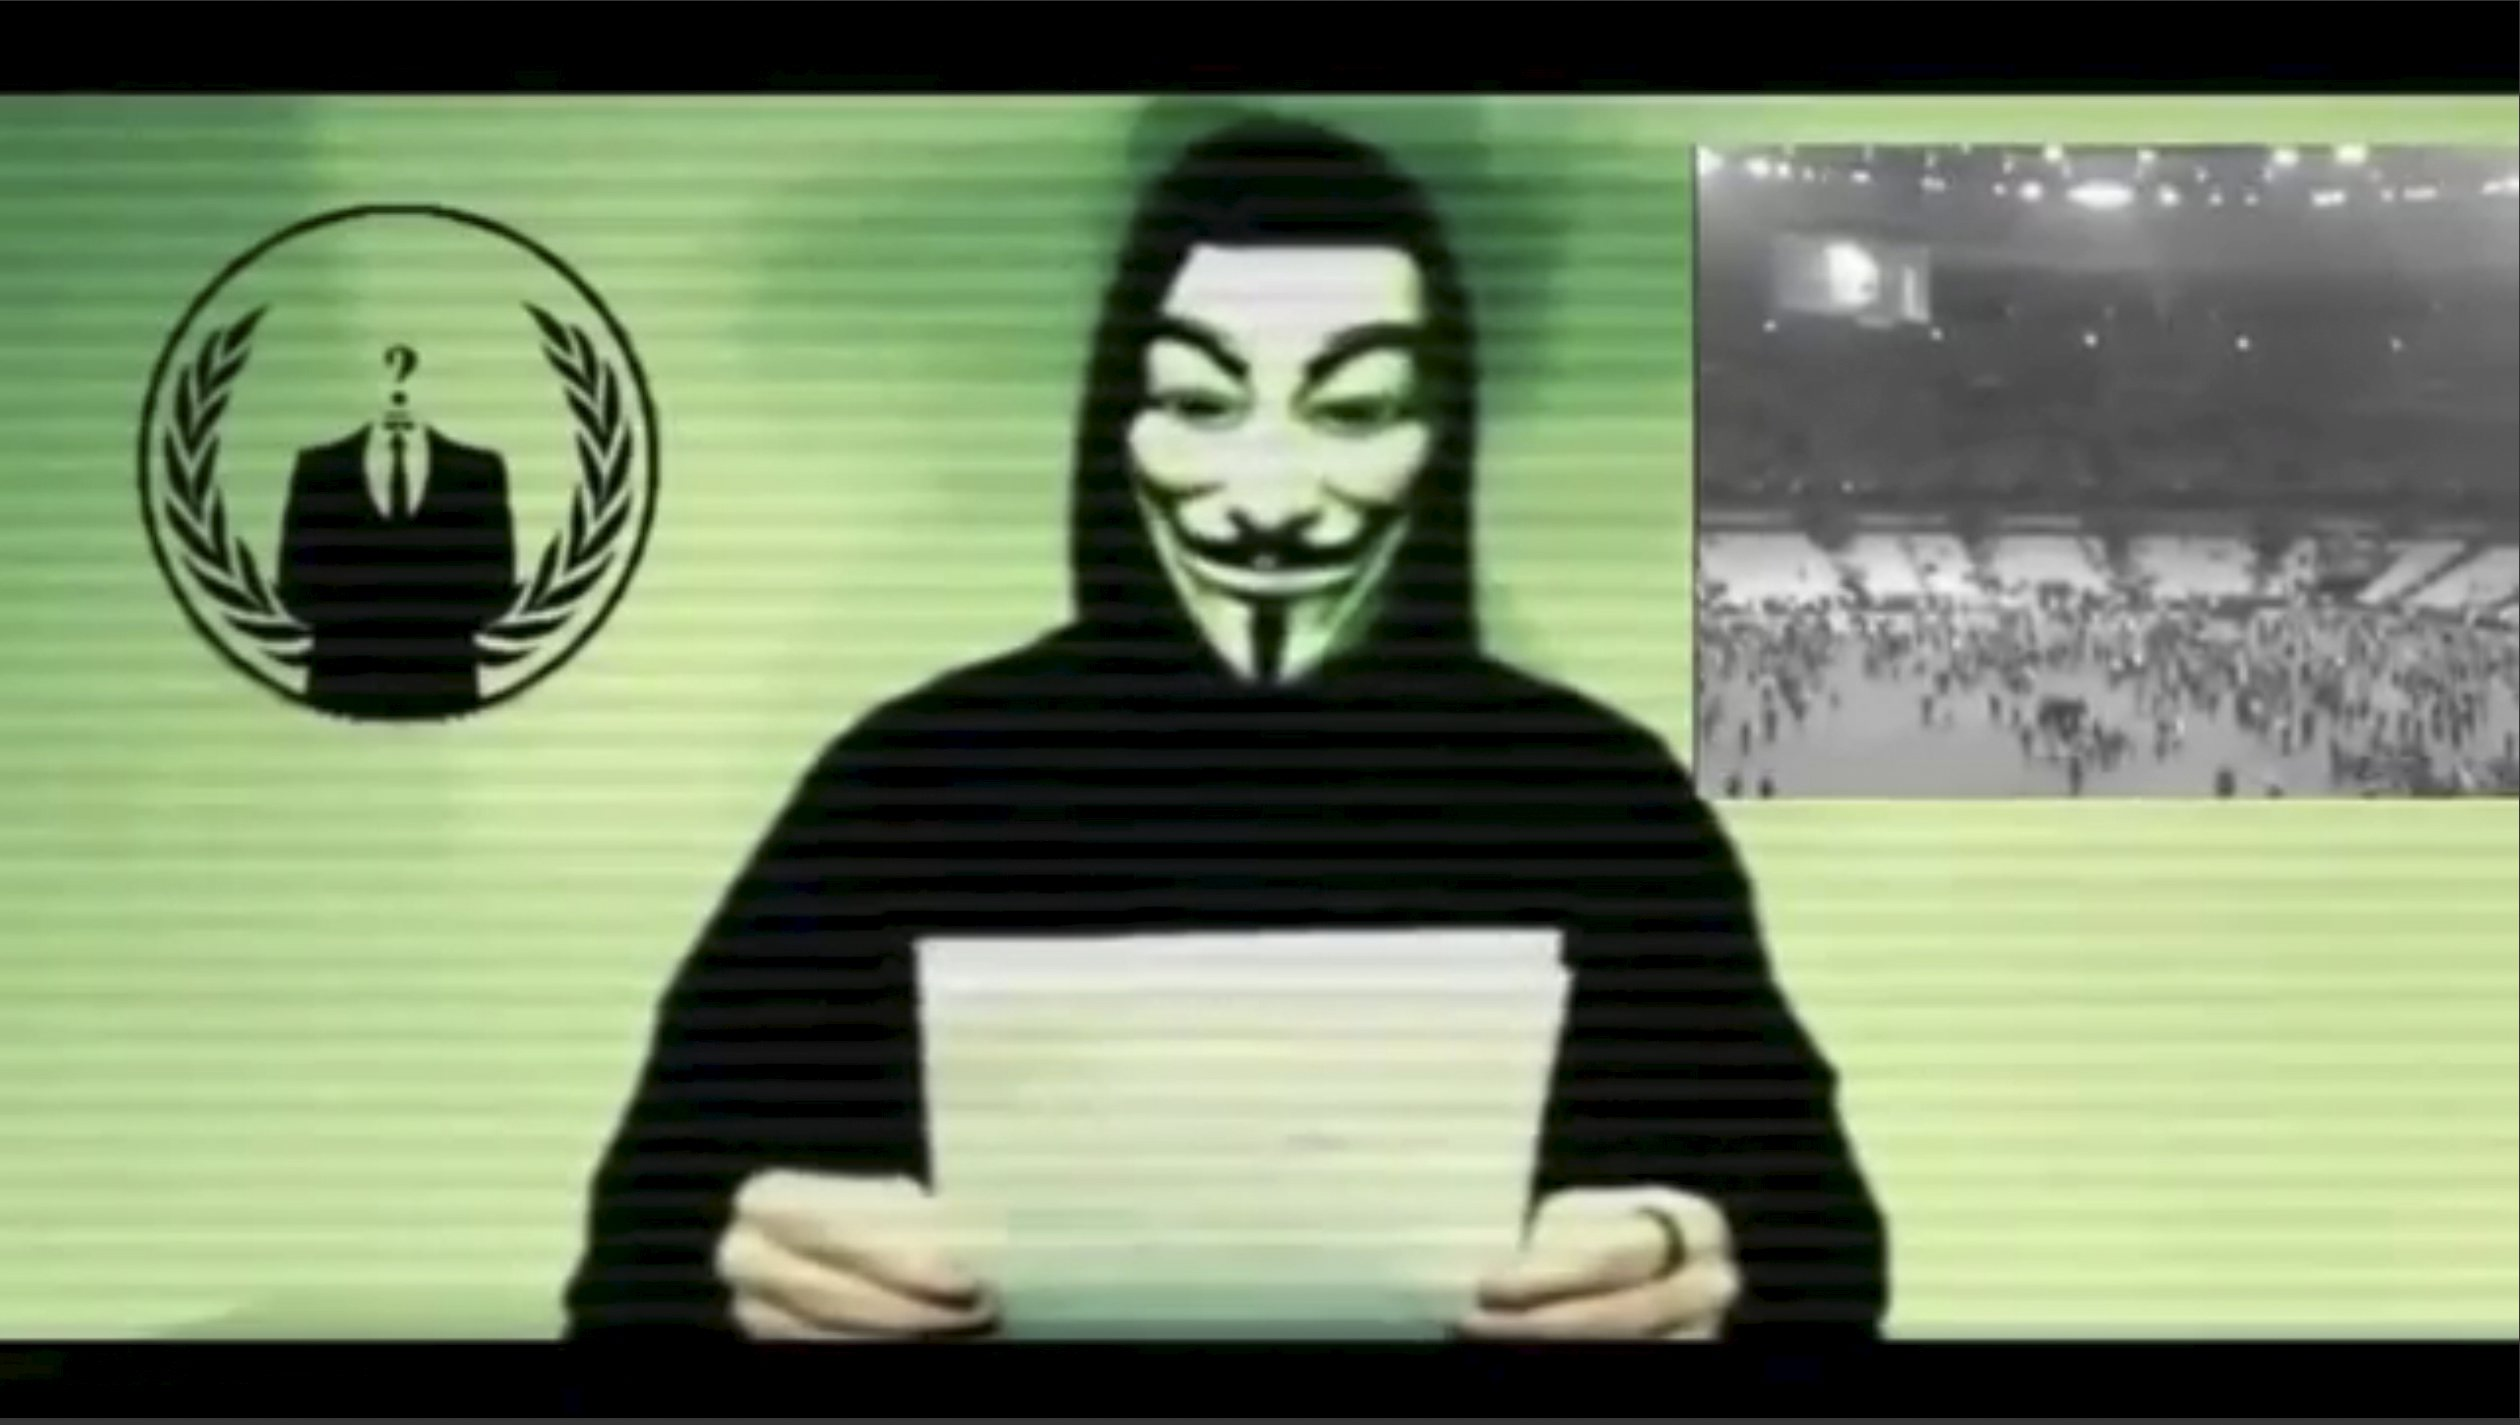 TheAnonymoushackers collective is preparing to unleash waves of cyberattacks on Islamic State following the attacks in Paris last week that killed 129 people, it declared in the video posted online. Social Media Website via Reuters